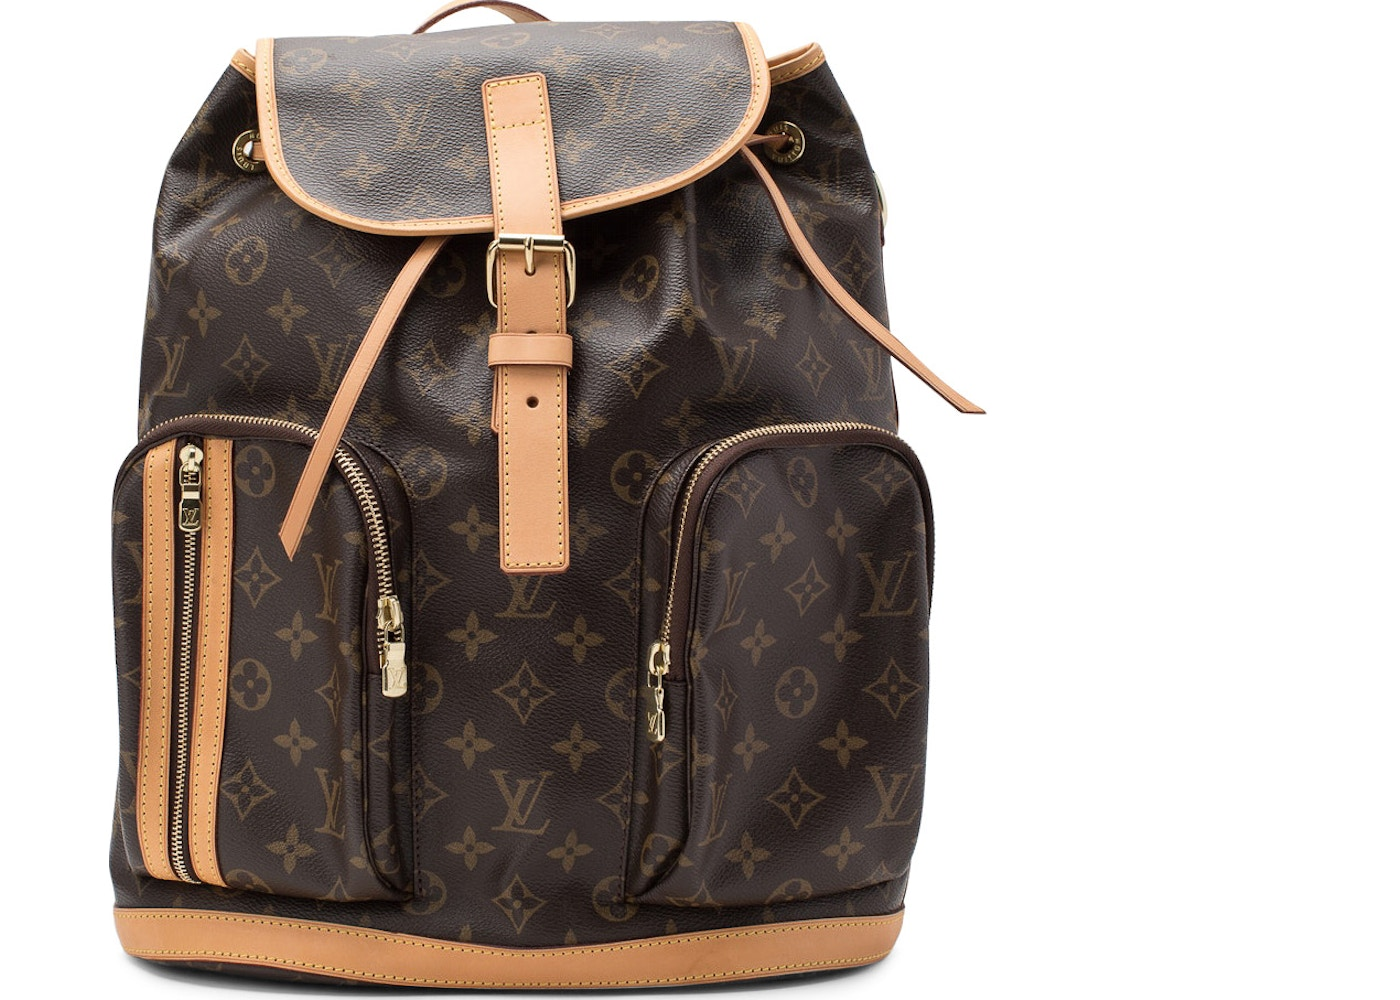 8839165843dd Louis Vuitton Backpack Bosphore Monogram Brown. Monogram Brown